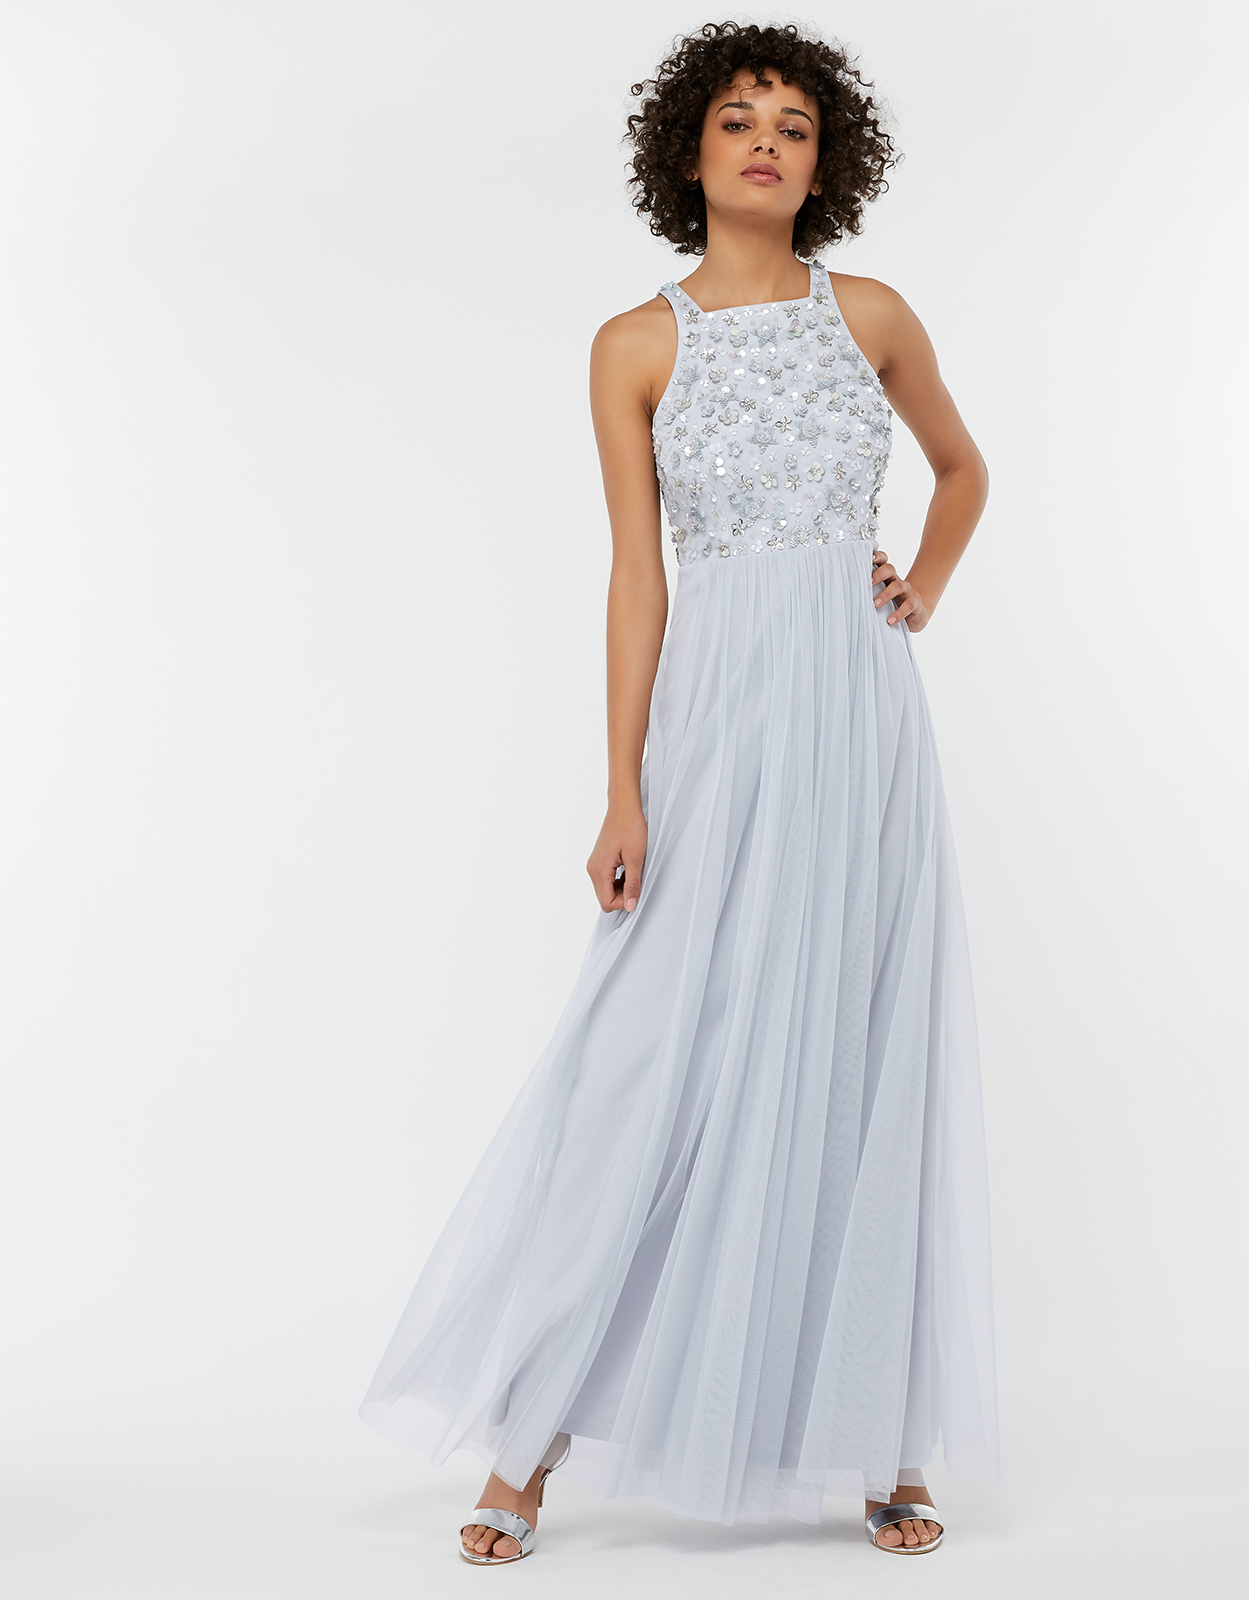 Monsoon Constance Sequin Embellished Maxi Bridesmaid Dress